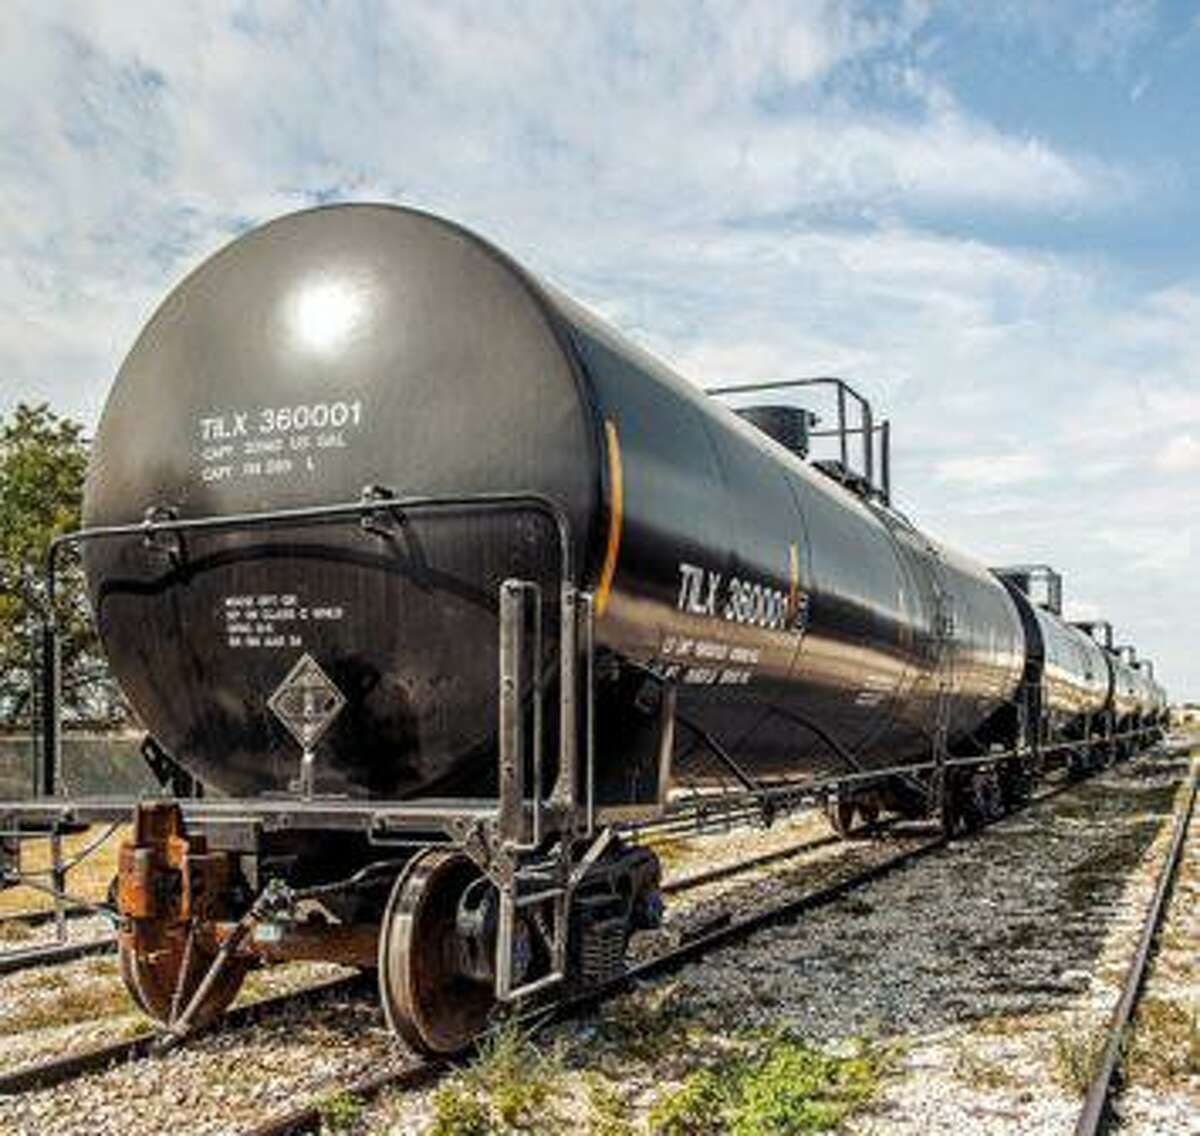 TrinityRail, a subsidiary of Dallas-based Trinity Industries, is laying off working at a Vidor rail service facility at the end of April, 2021.